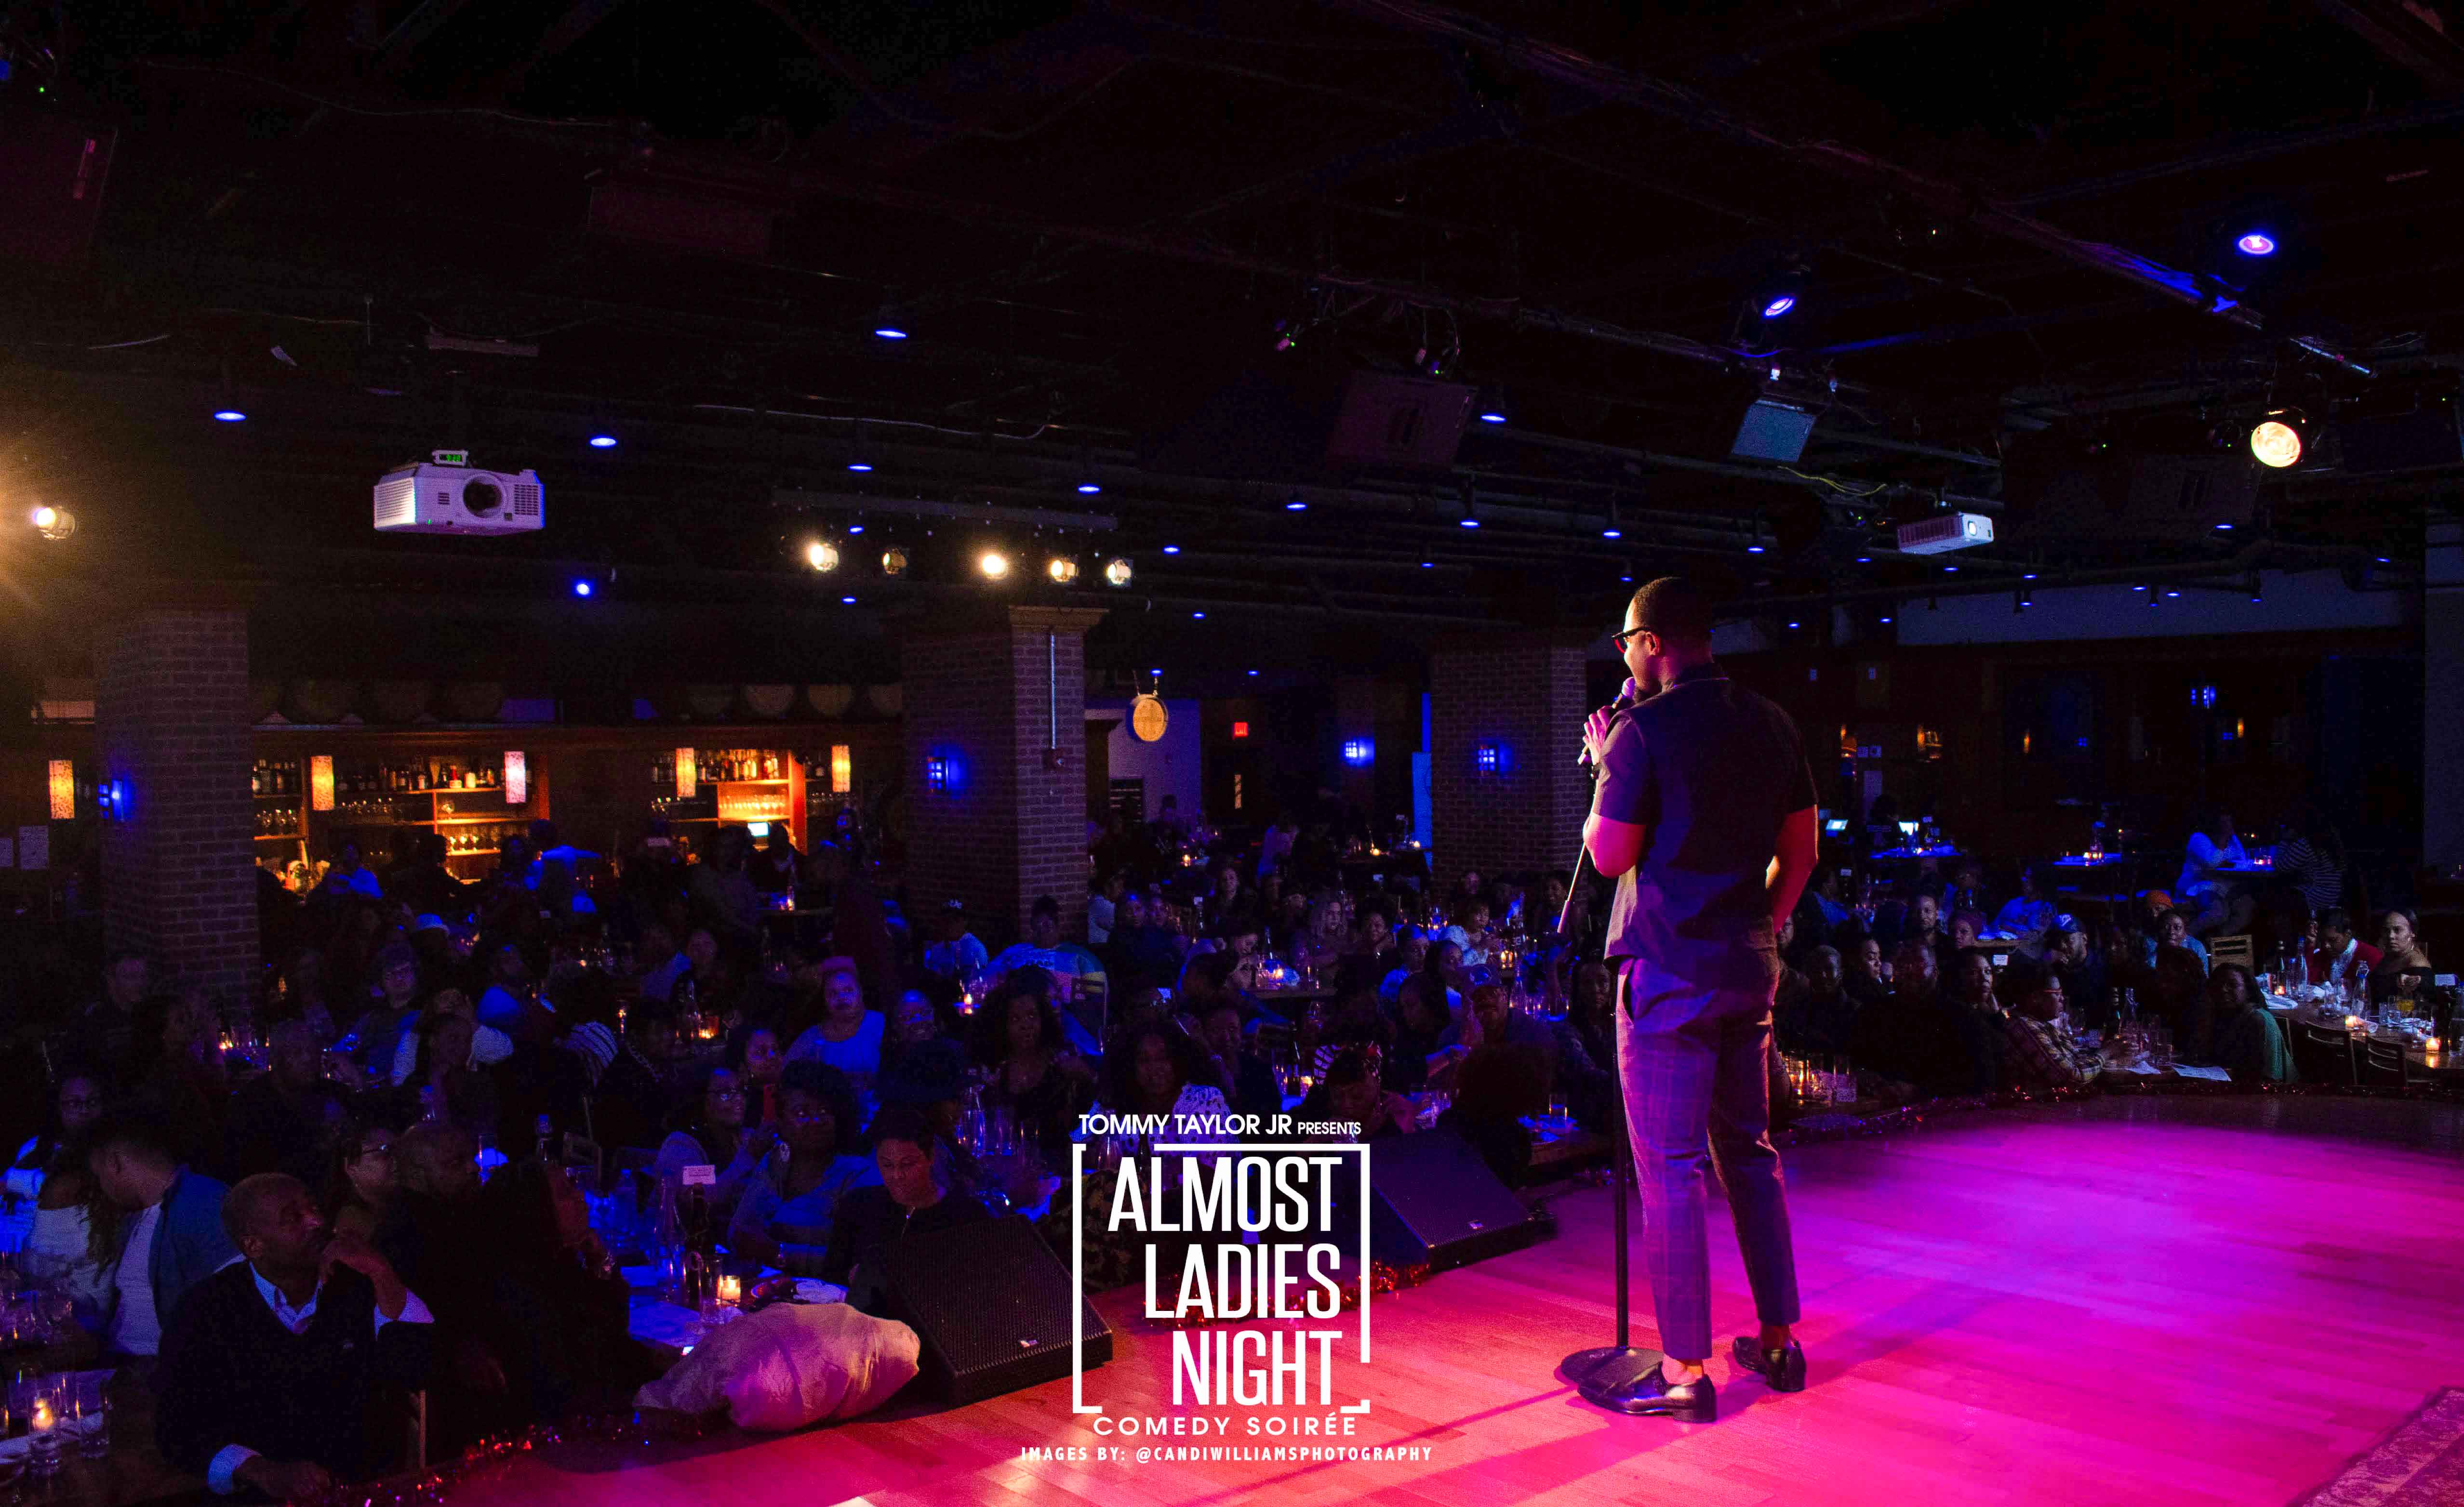 almost Ladies Night w/Tommy Taylor Jr.